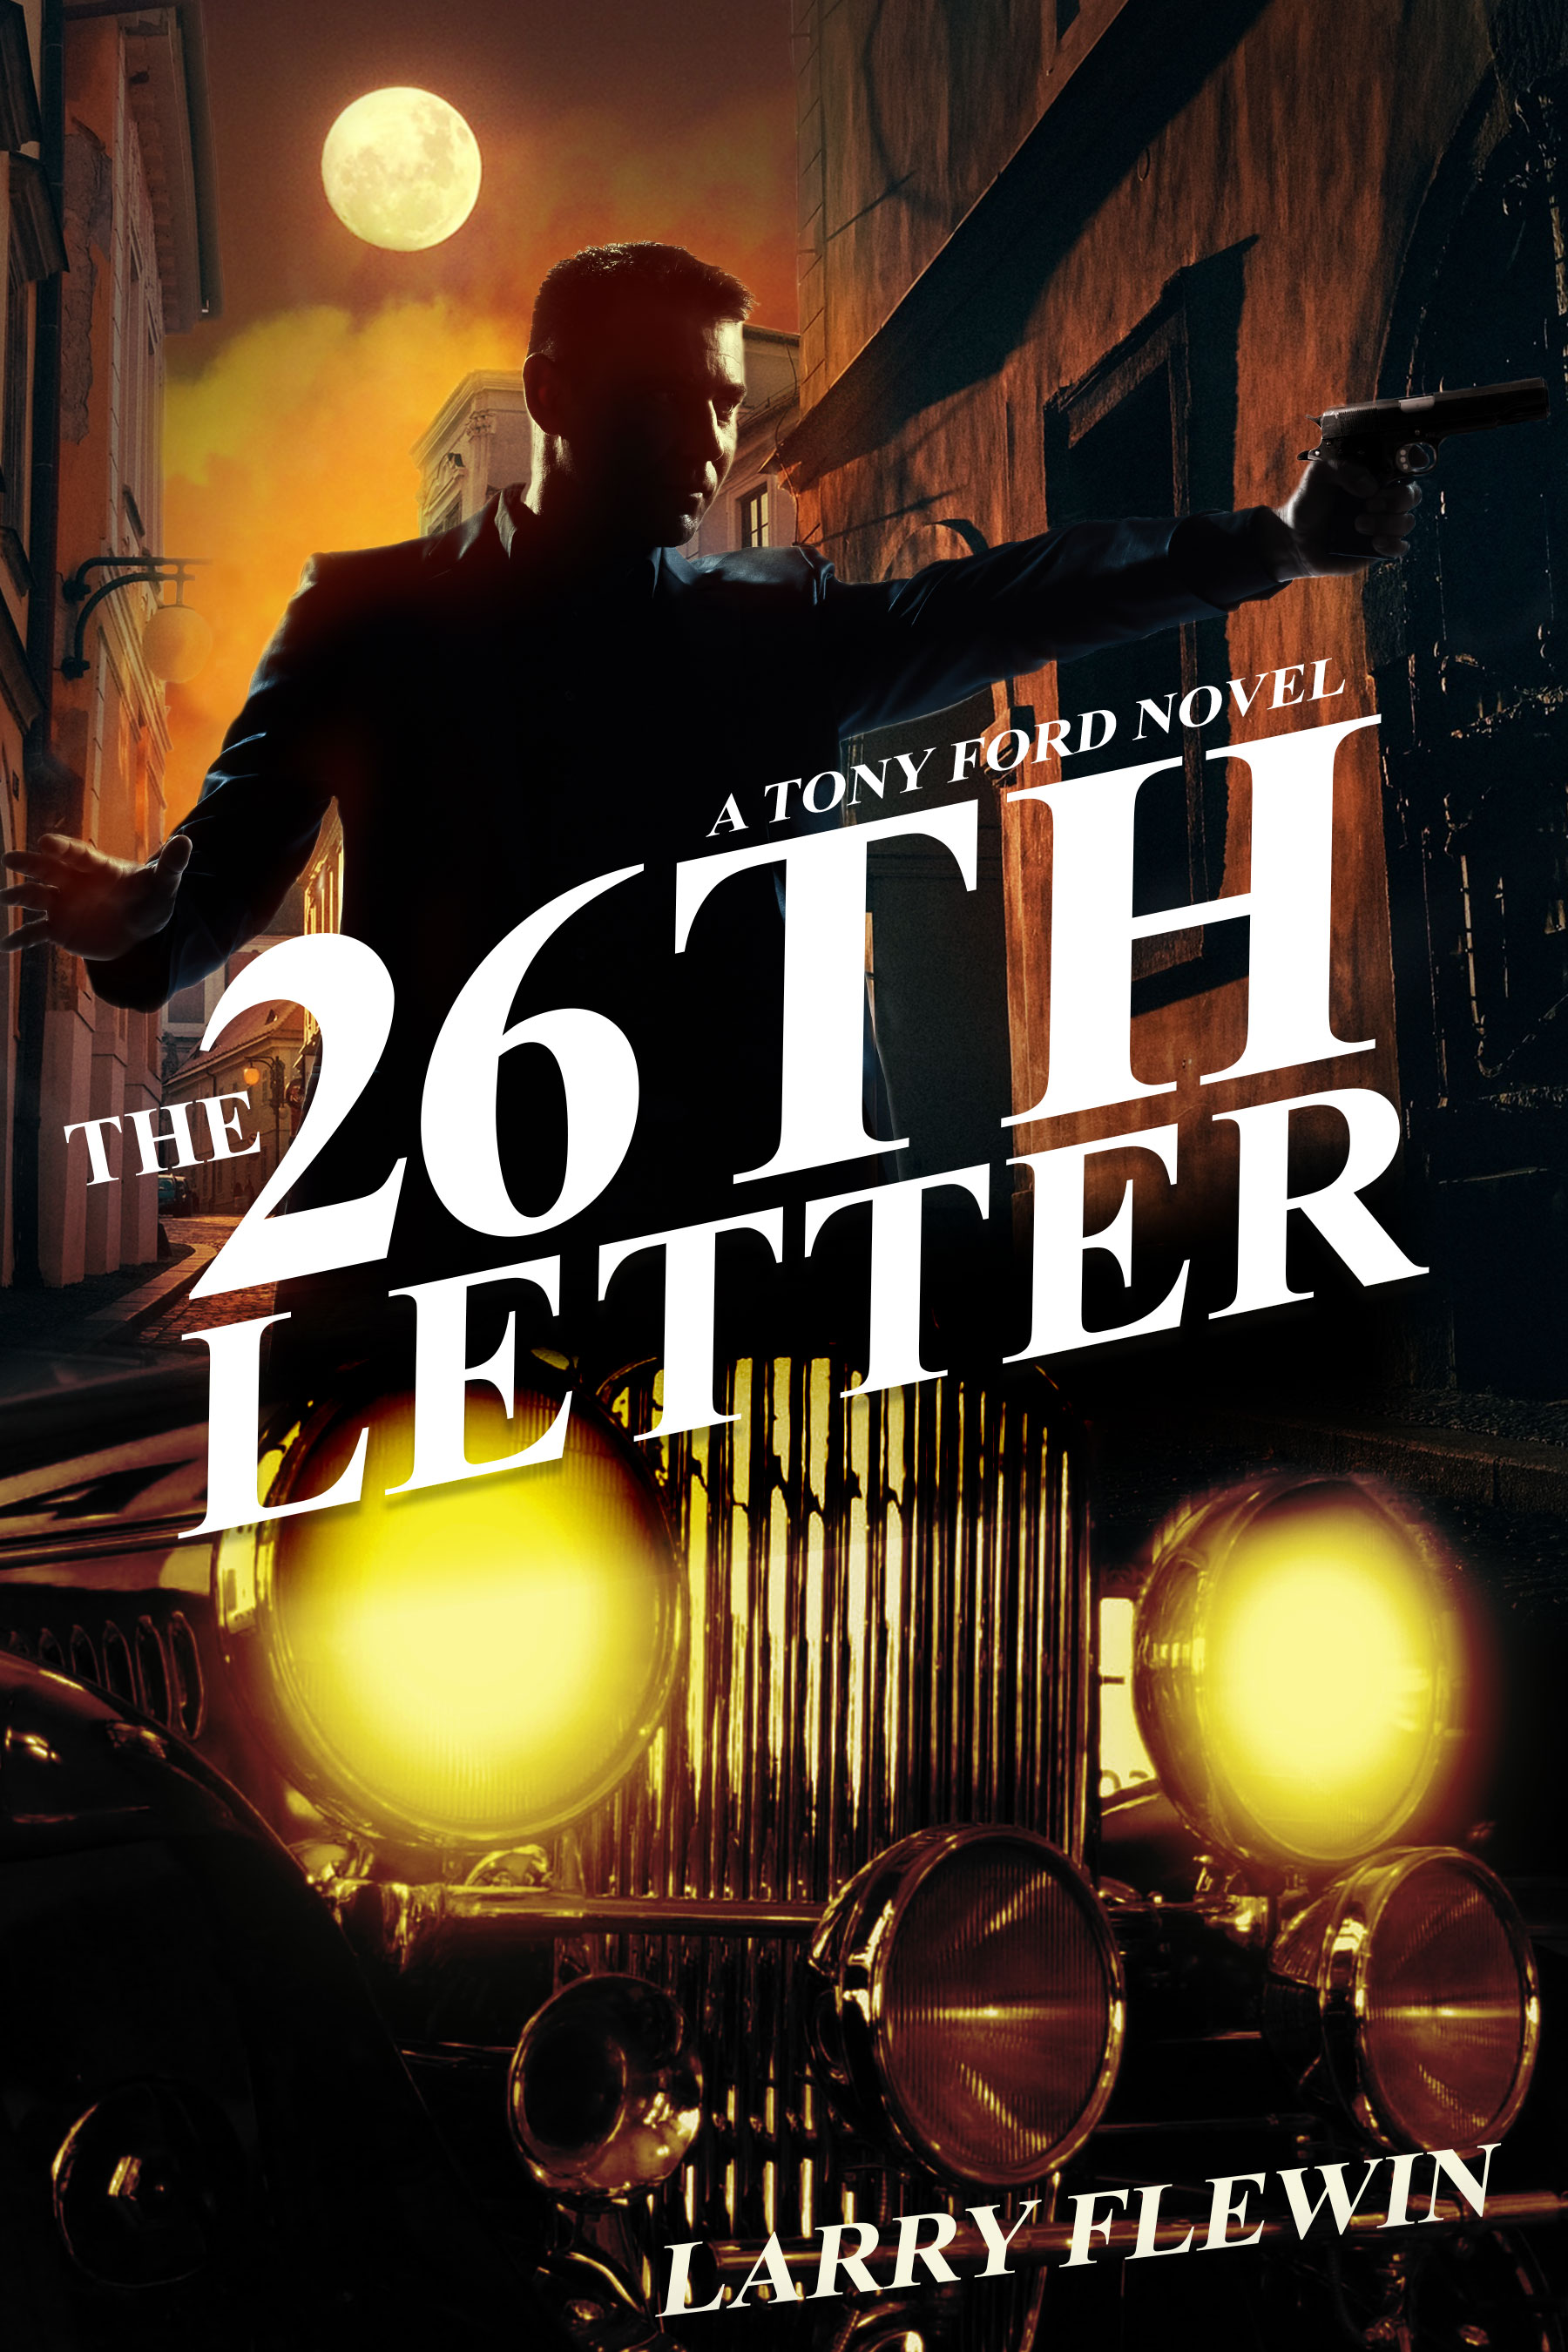 The 26th Letter